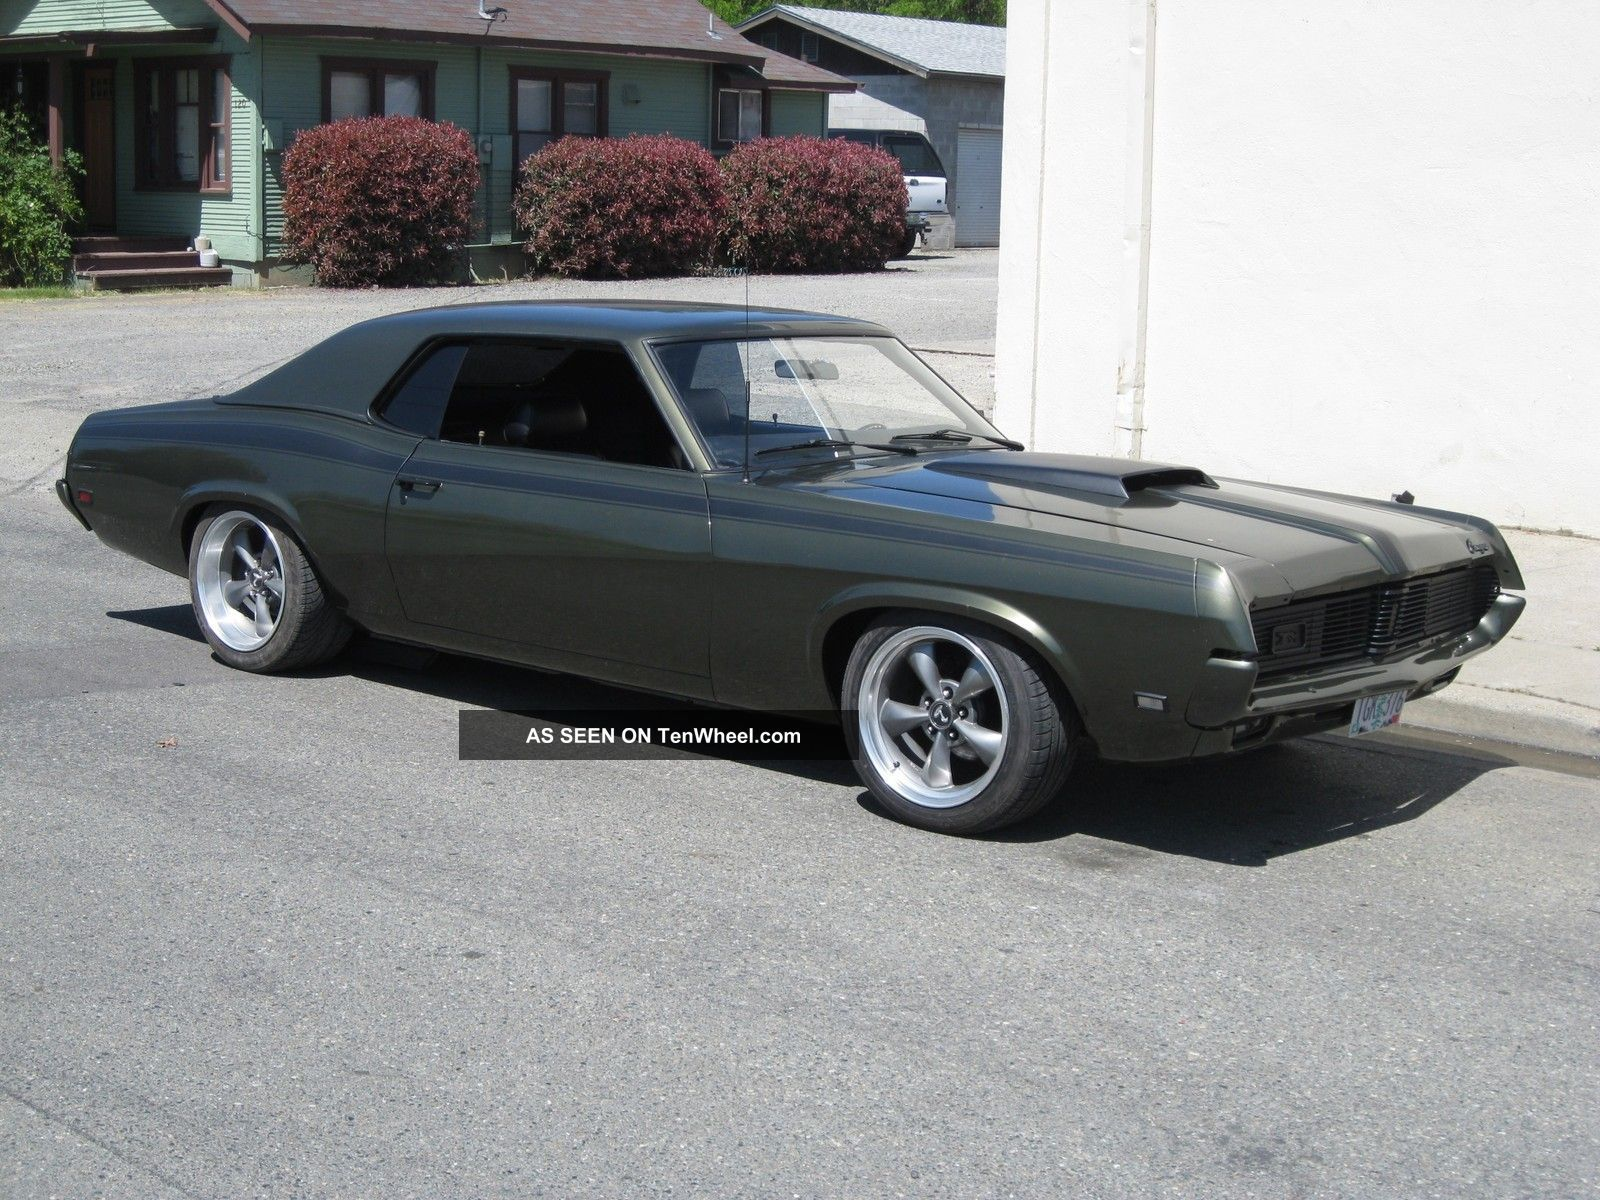 Cougar Mustang Camero Hotrod Muscle Car Pro